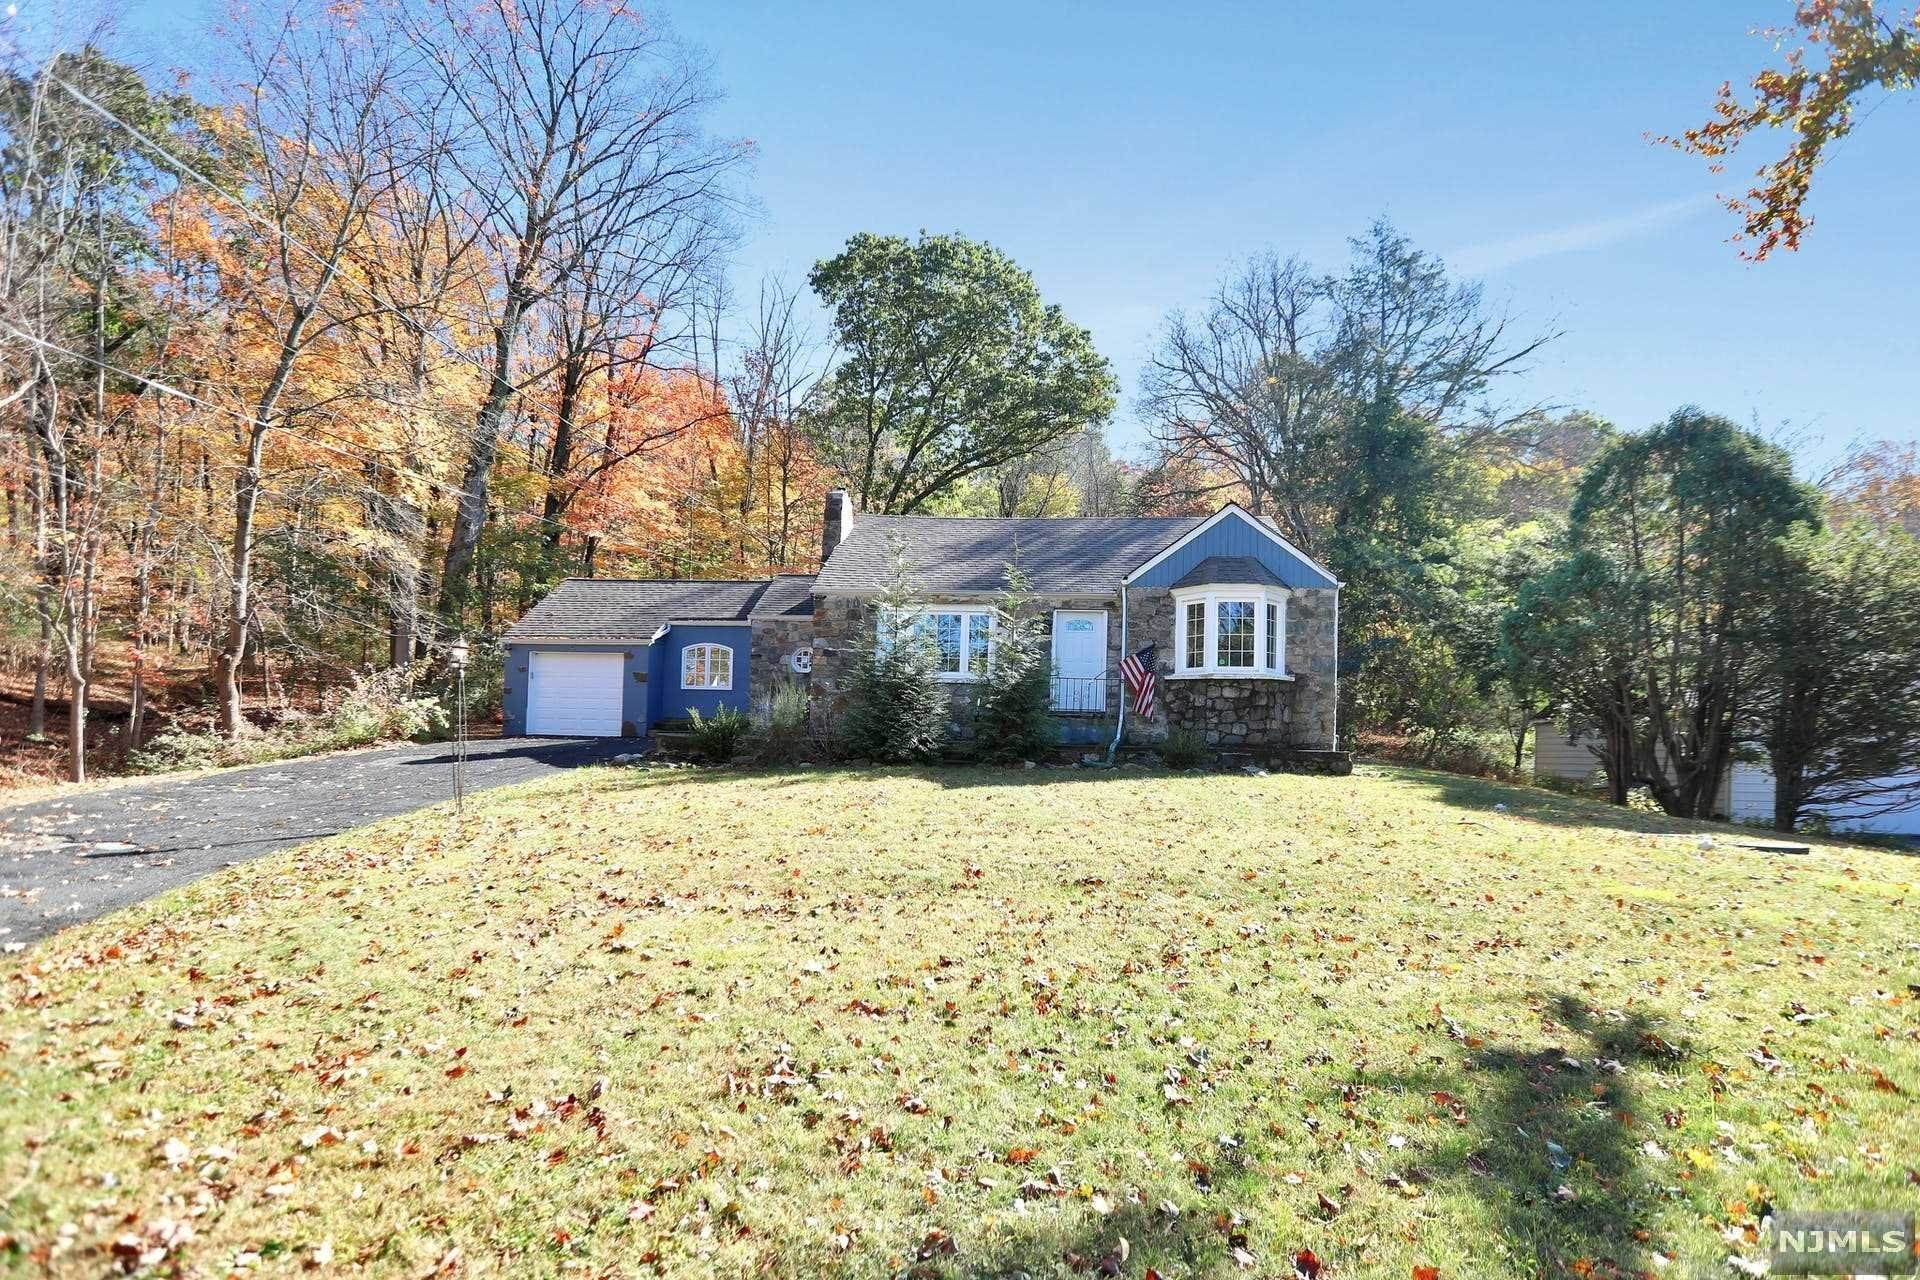 Single Family Home for Sale at 2 Ramapo Valley Road Oakland, New Jersey, 07436 United States